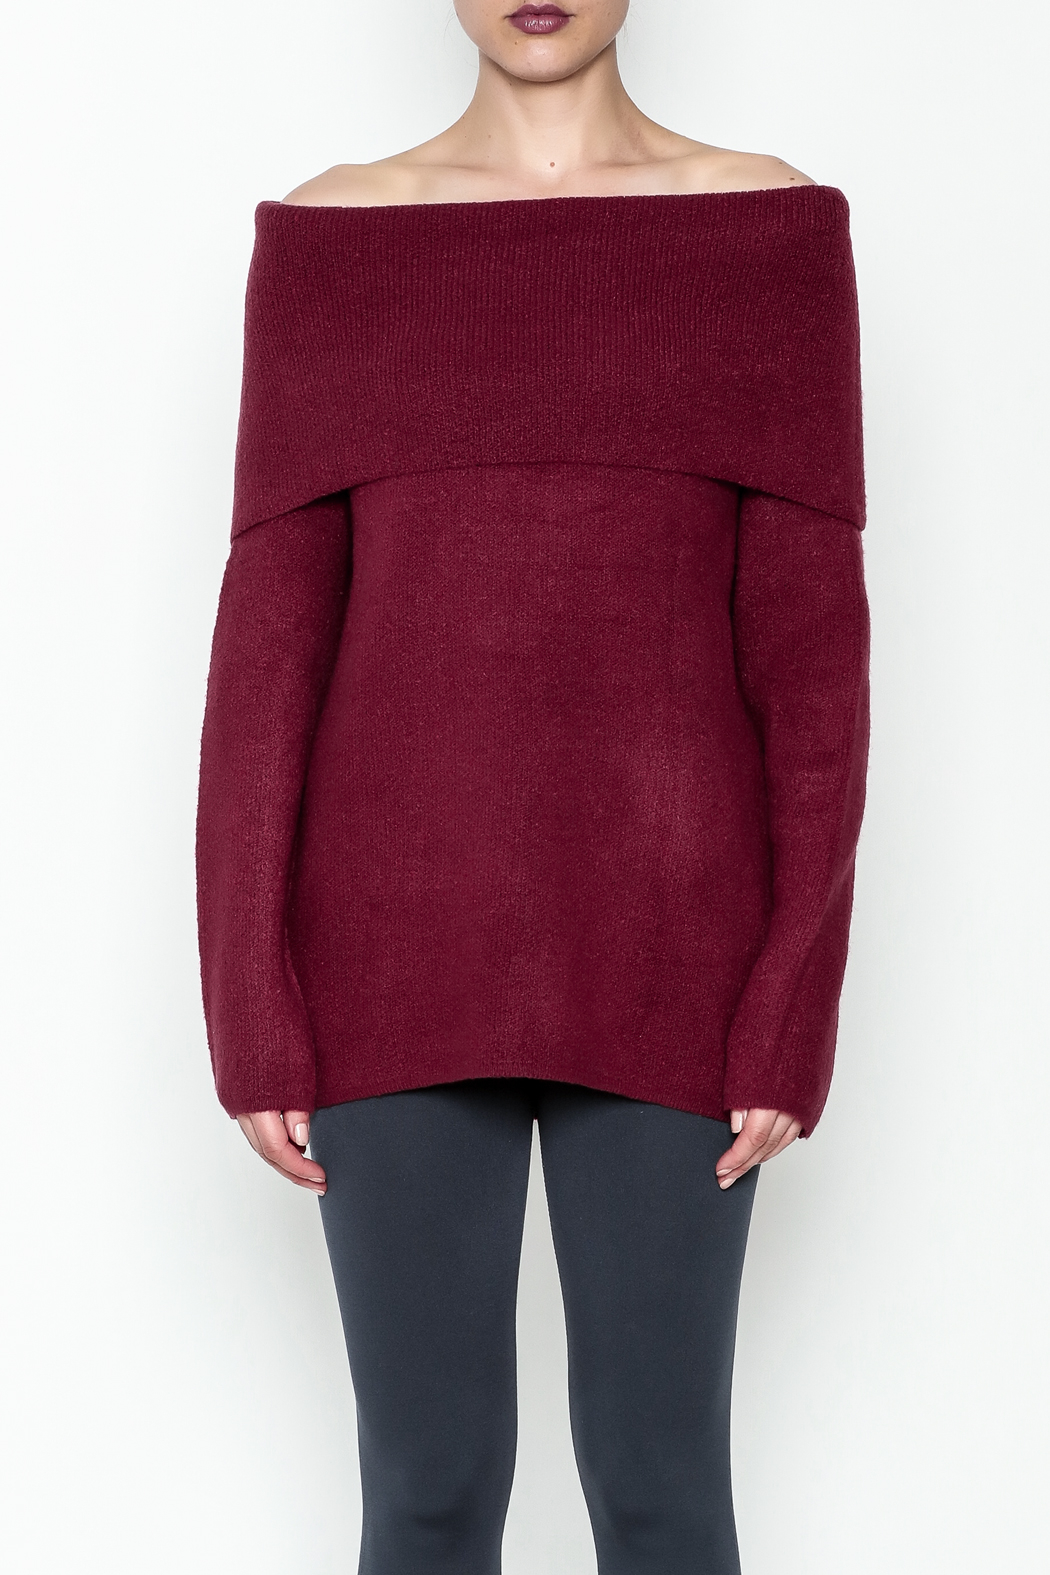 Elan Pullover Knit Sweater - Front Full Image